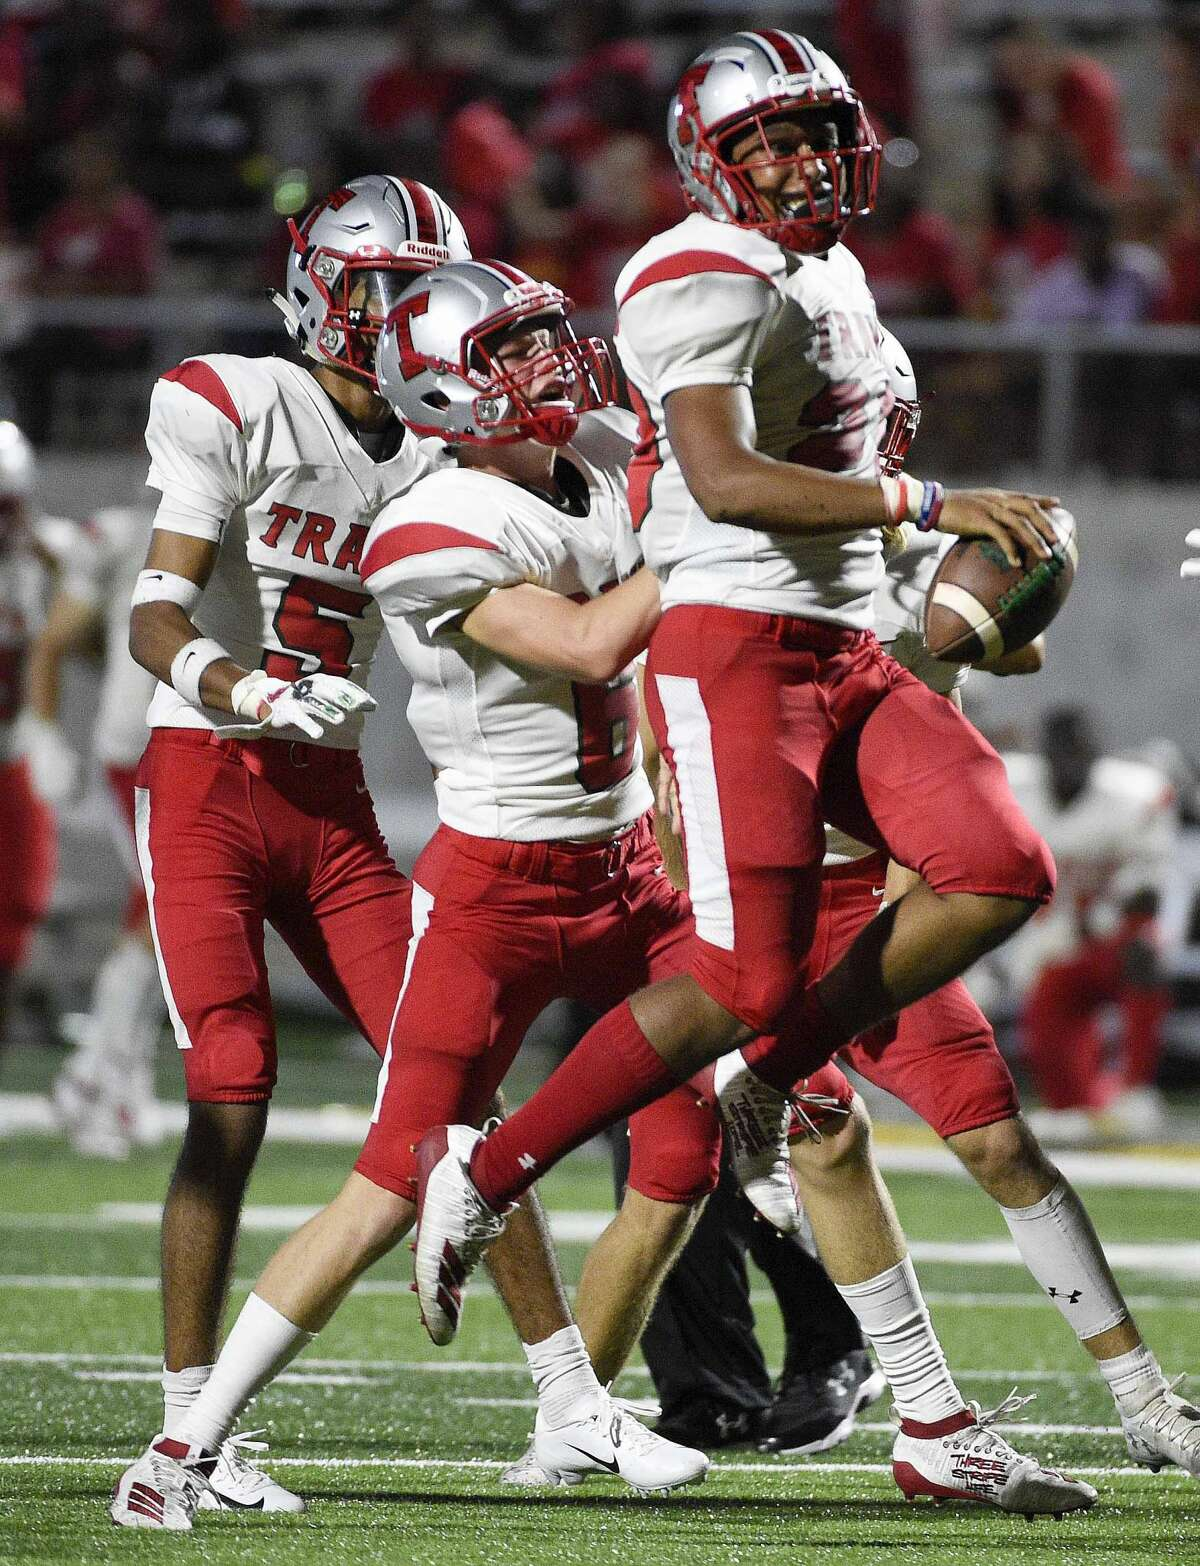 Travis linebacker Marcus Trevino, right, celebrates his fumble recovery with defensive back Mason Muchaw during the second half of a high school football game against Hightower, Friday, Aug. 30, 2019, in Iowa Colony, TX.